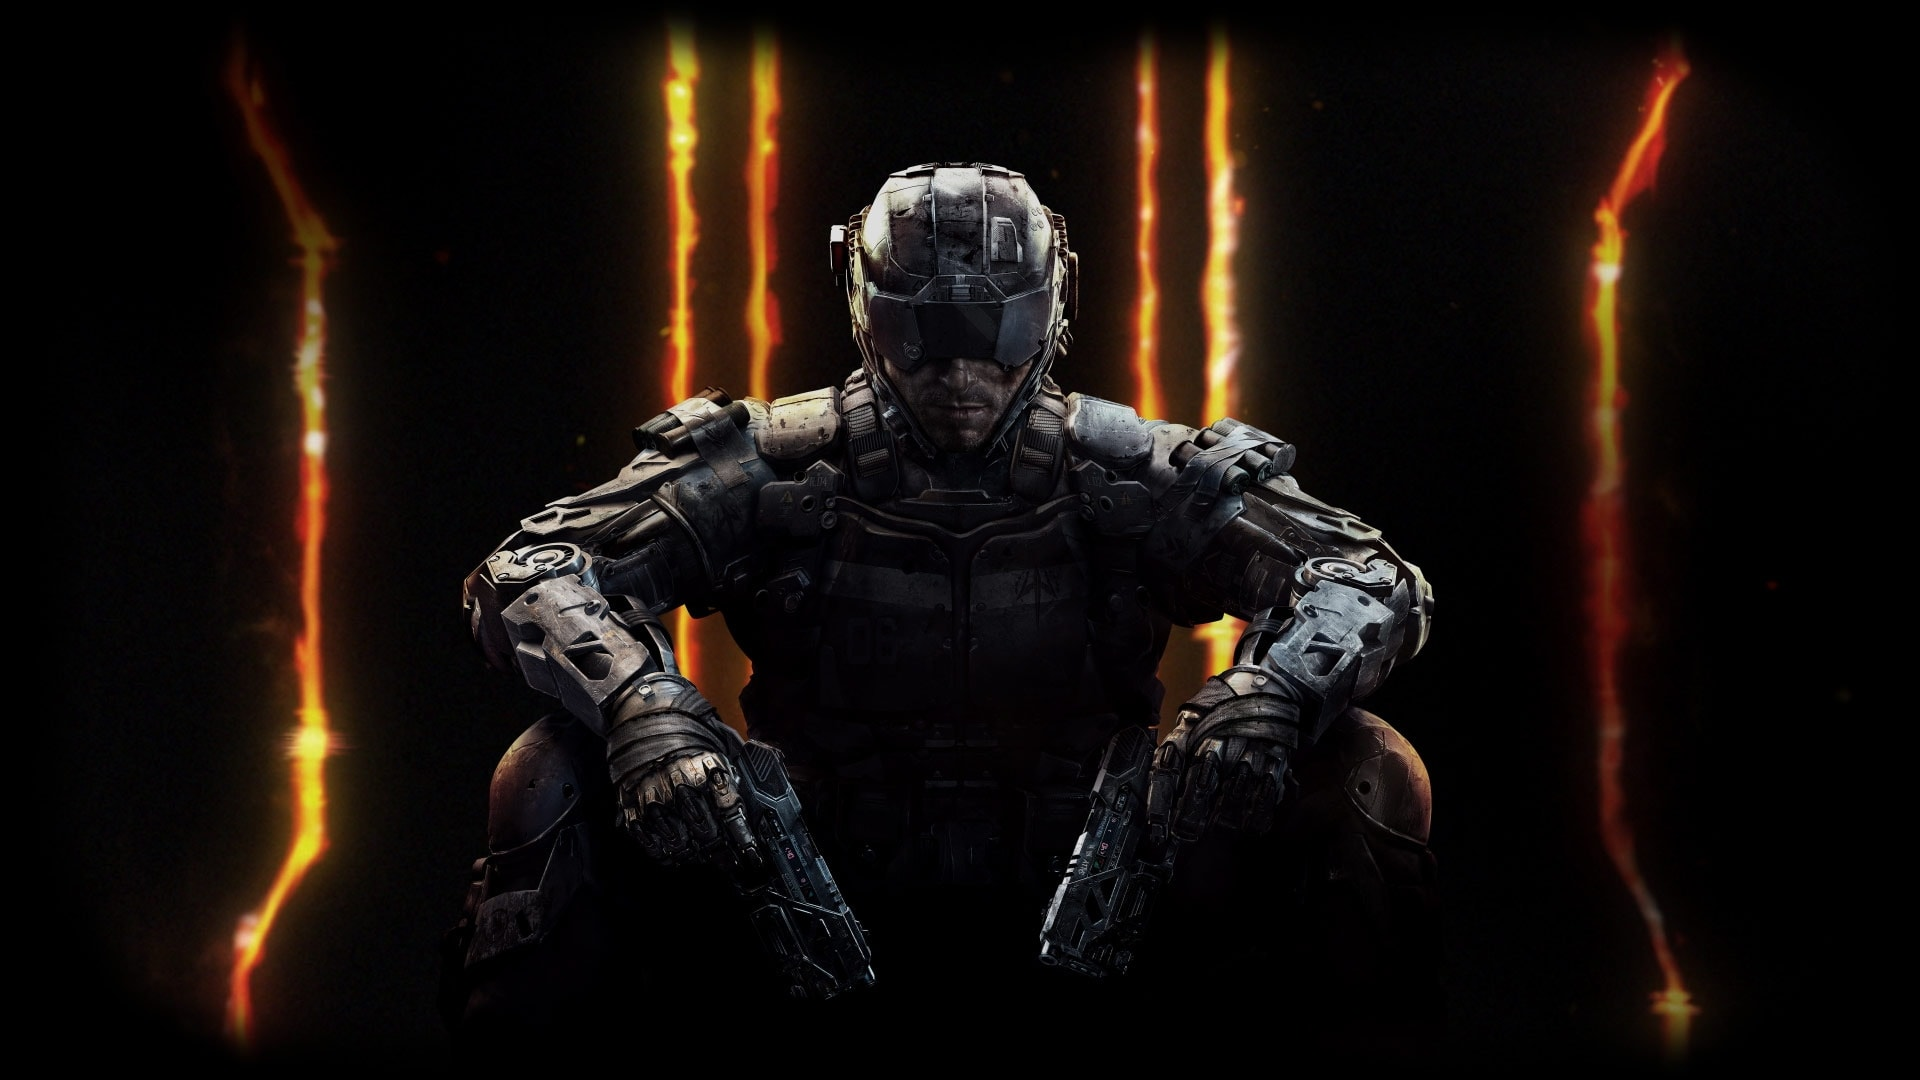 Call of Duty: Black Ops 3 widescreen wallpapers